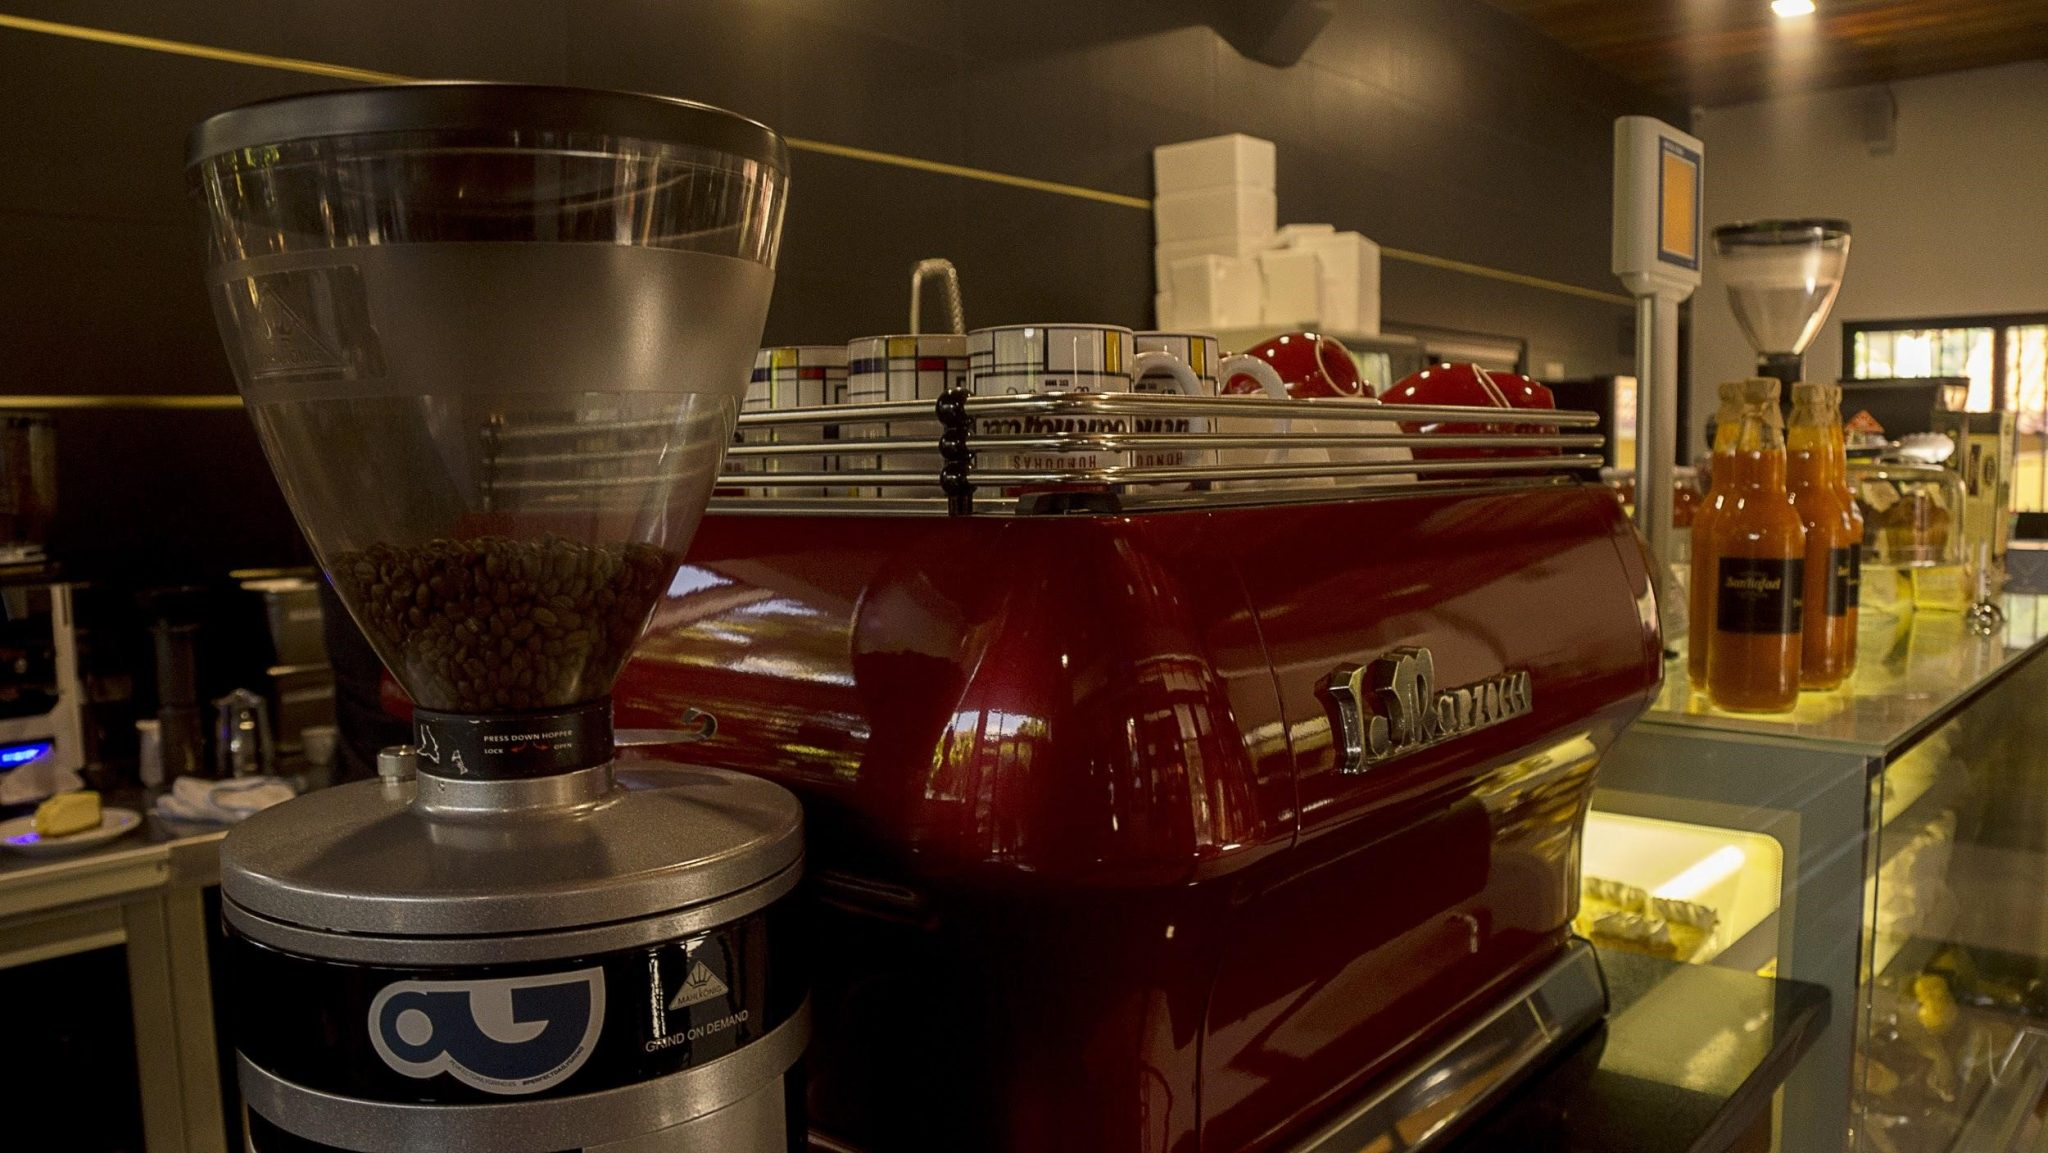 A barista station with a red espresso coffee machine